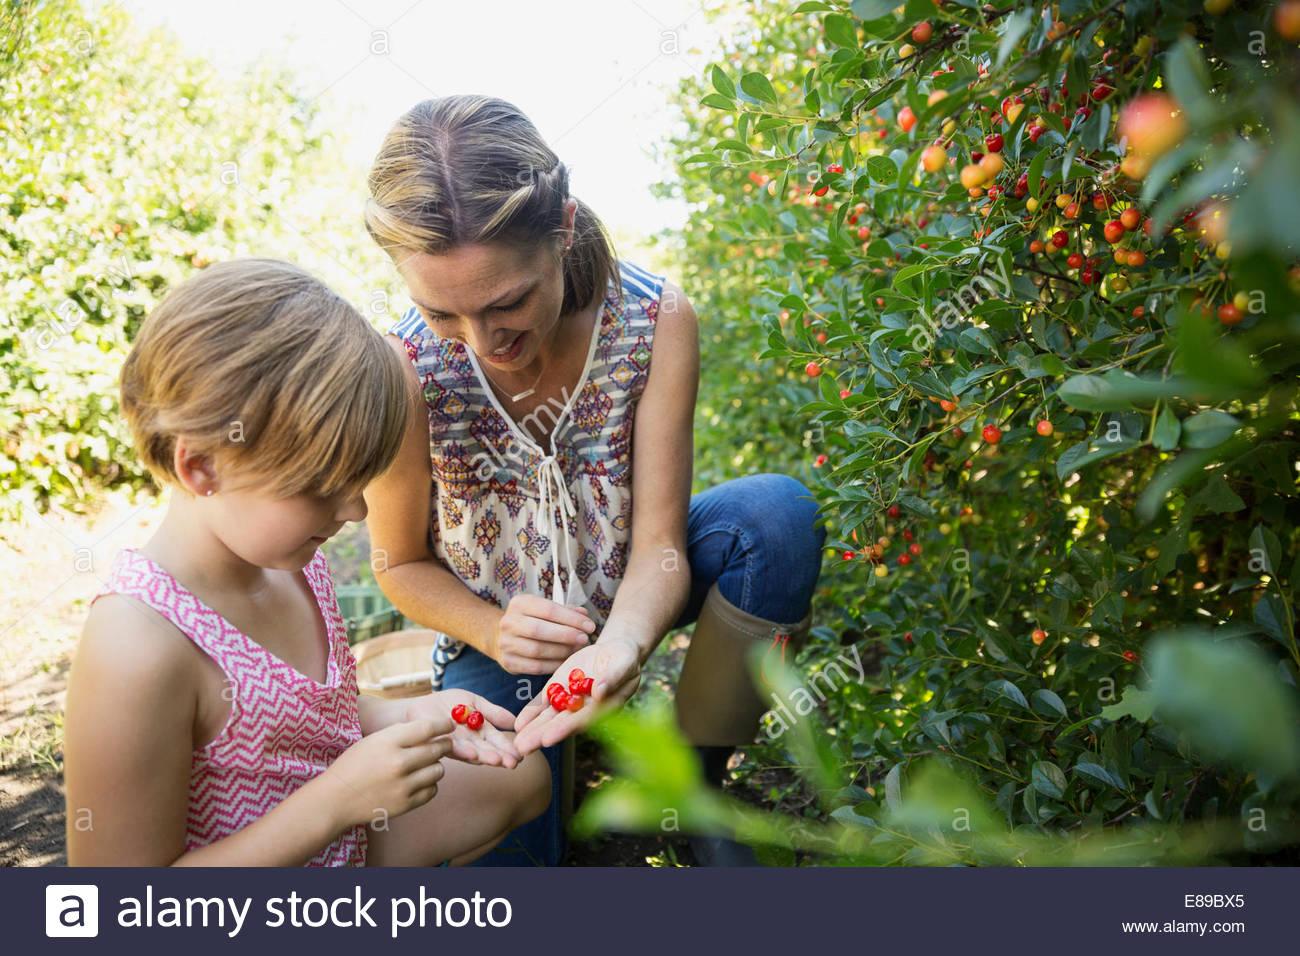 Mother and daughter picking currants in garden - Stock Image